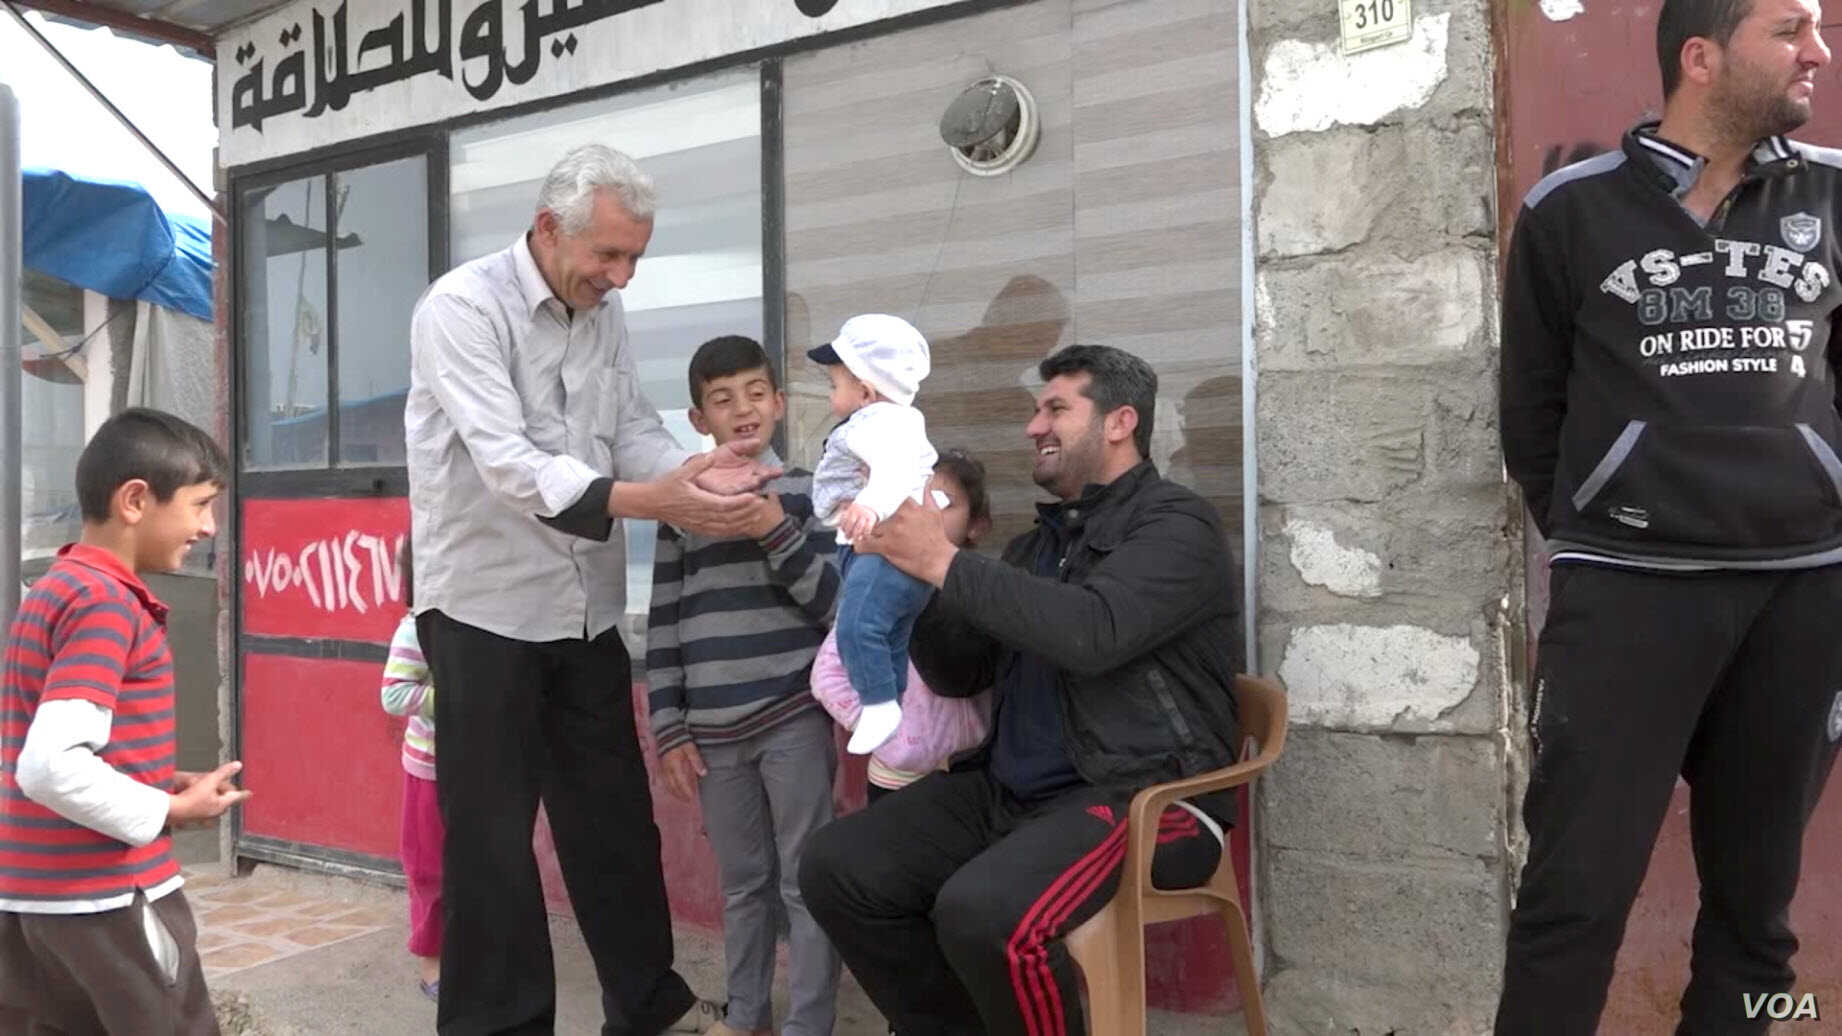 Hussain Ali smiles as he plays with an infant outside his small shop in Domiz, Iraq (VOA).